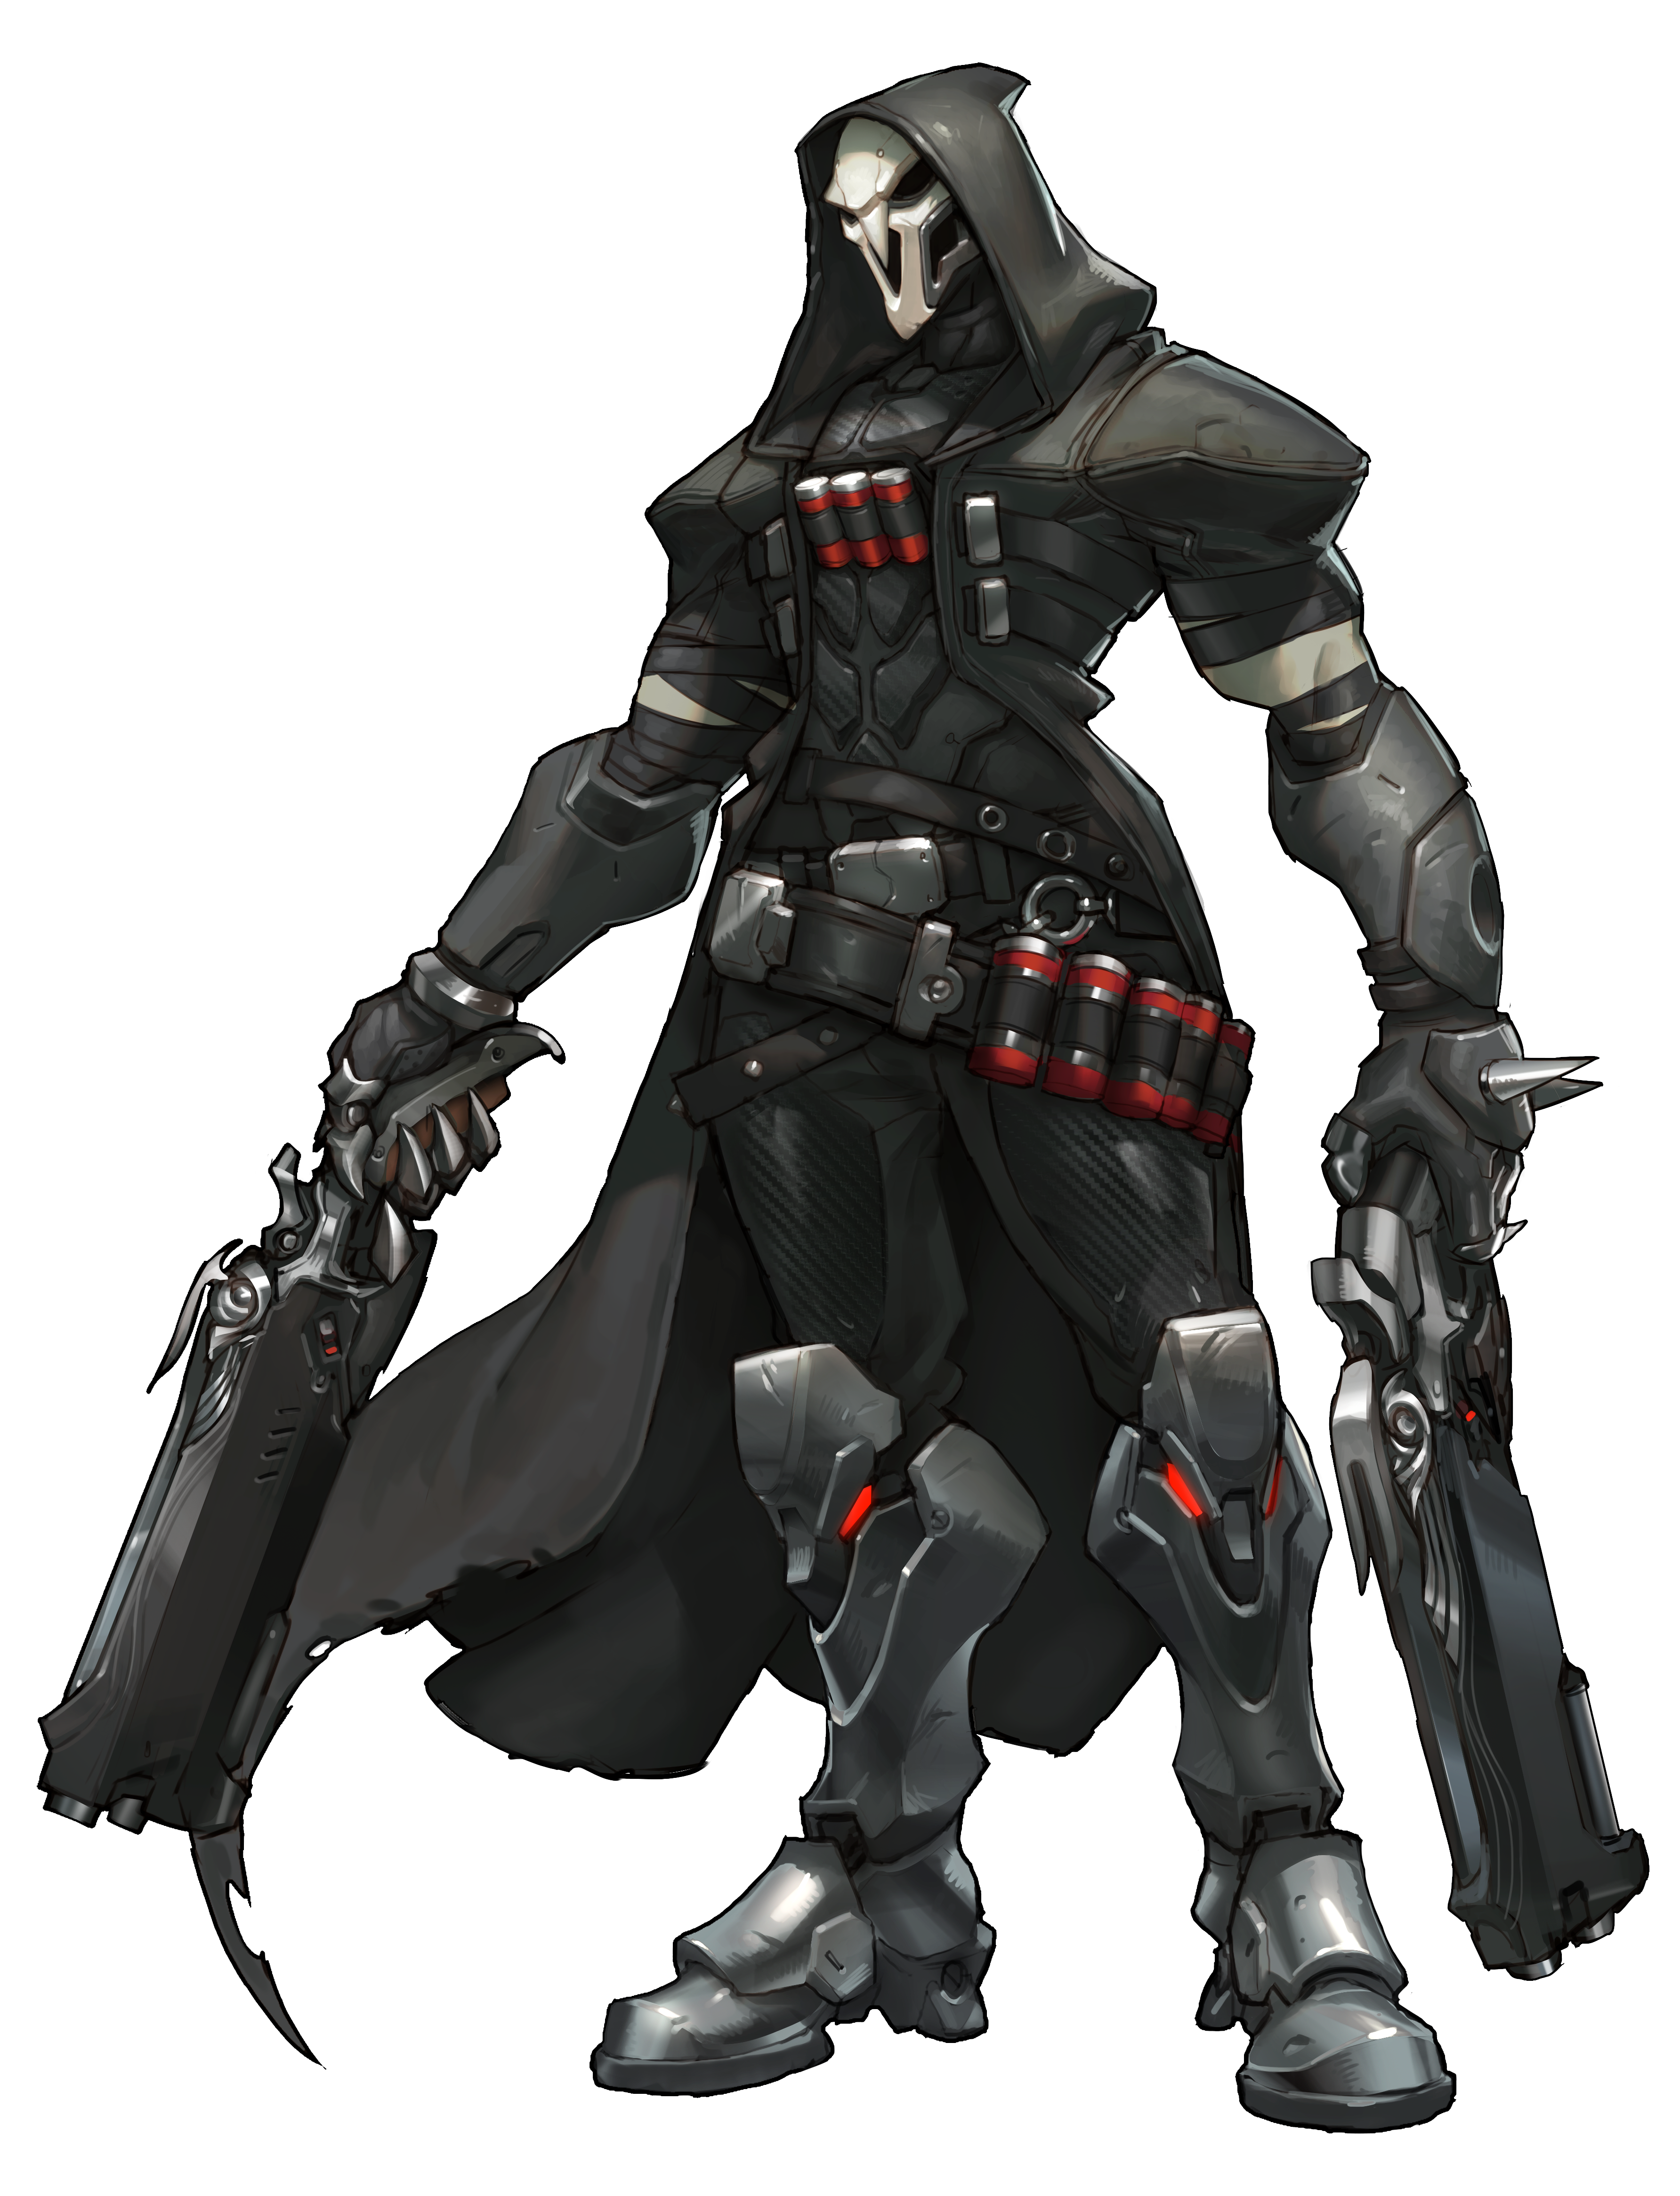 Transparent reaper render. From overwatch game art